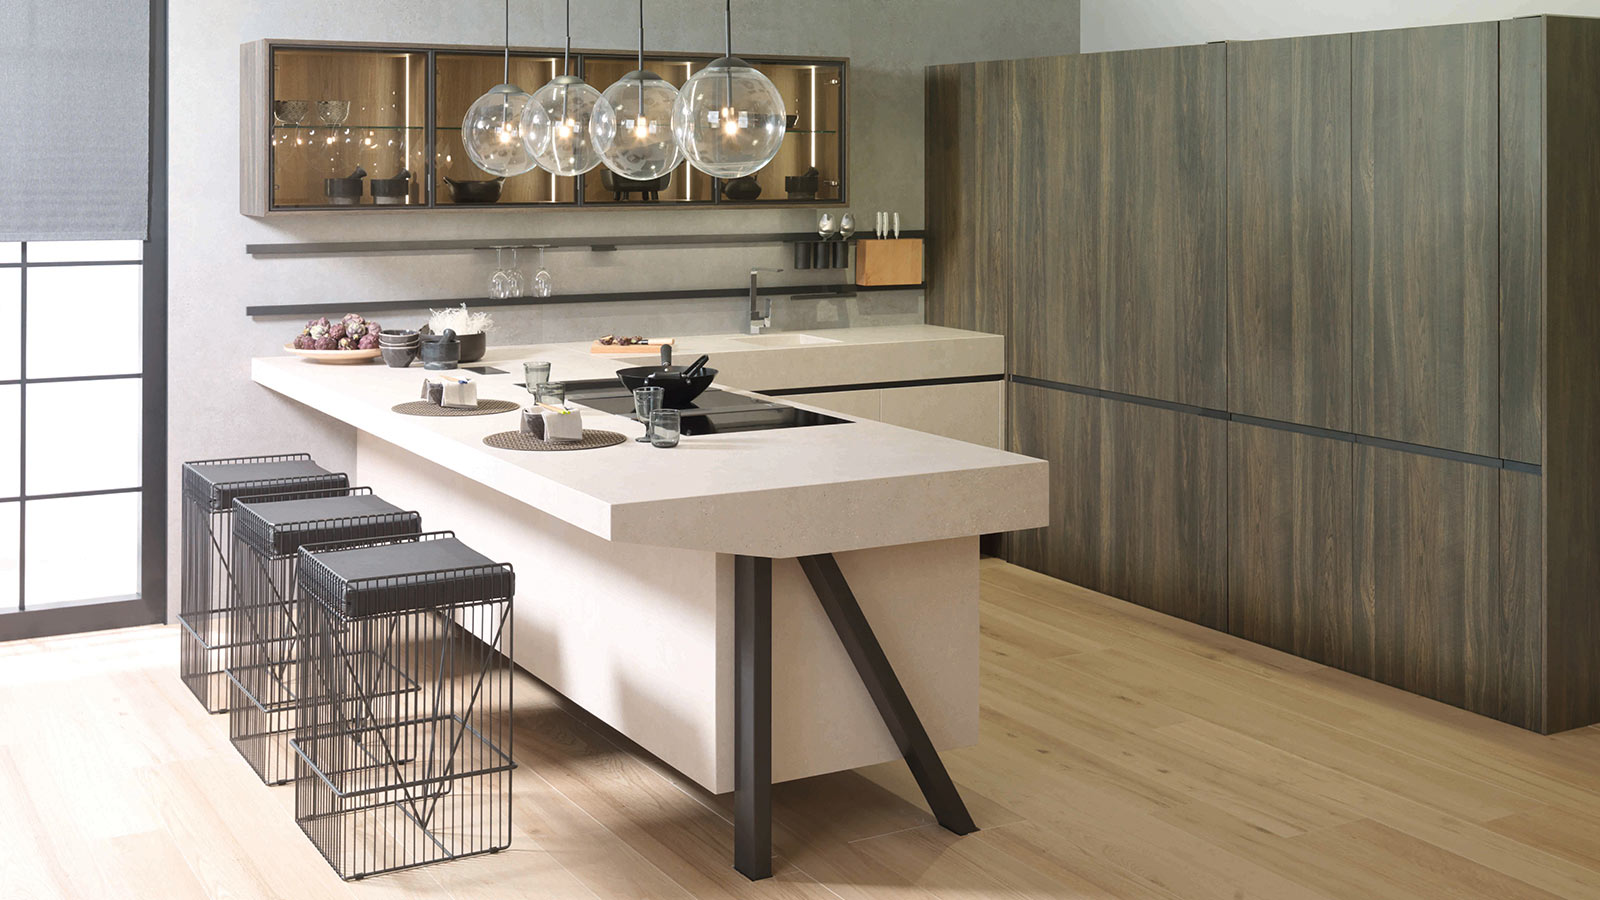 Organising your kitchen easily and efficiently